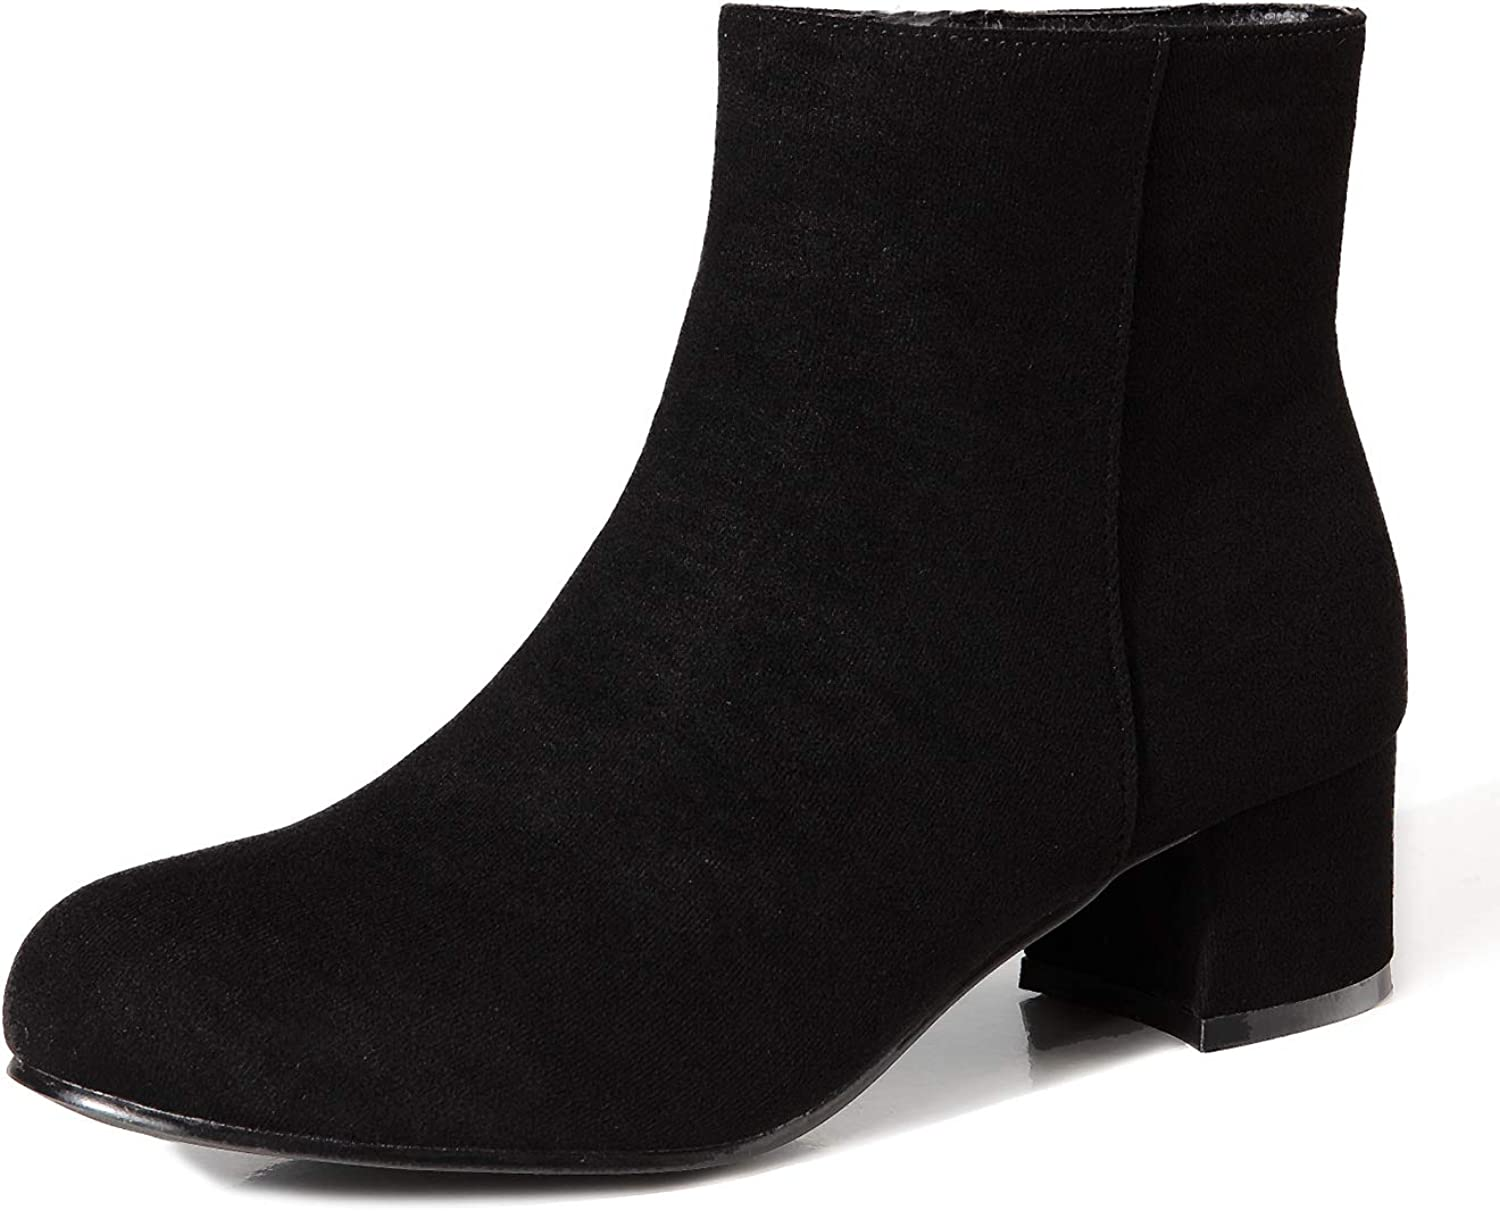 CAMSSOO Women's Ankle Boots Round Toe Zipper Mid Heels Dress Boots for Women